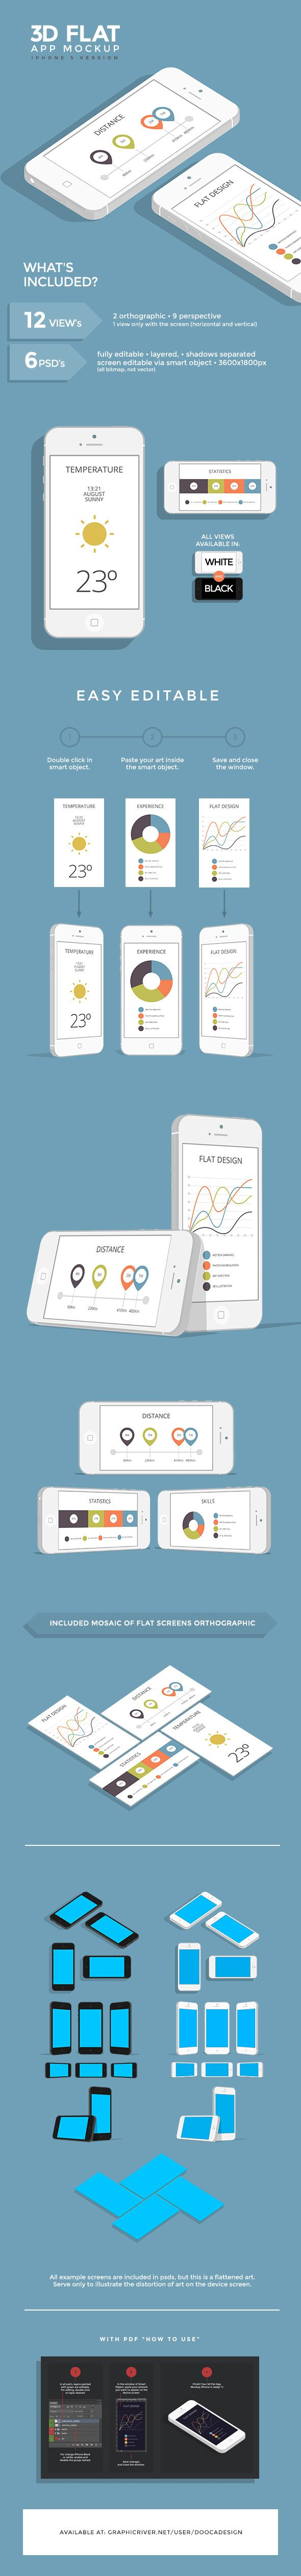 3D Flat App Mockup - iPhone by Dooca Premium Resources , via Behance